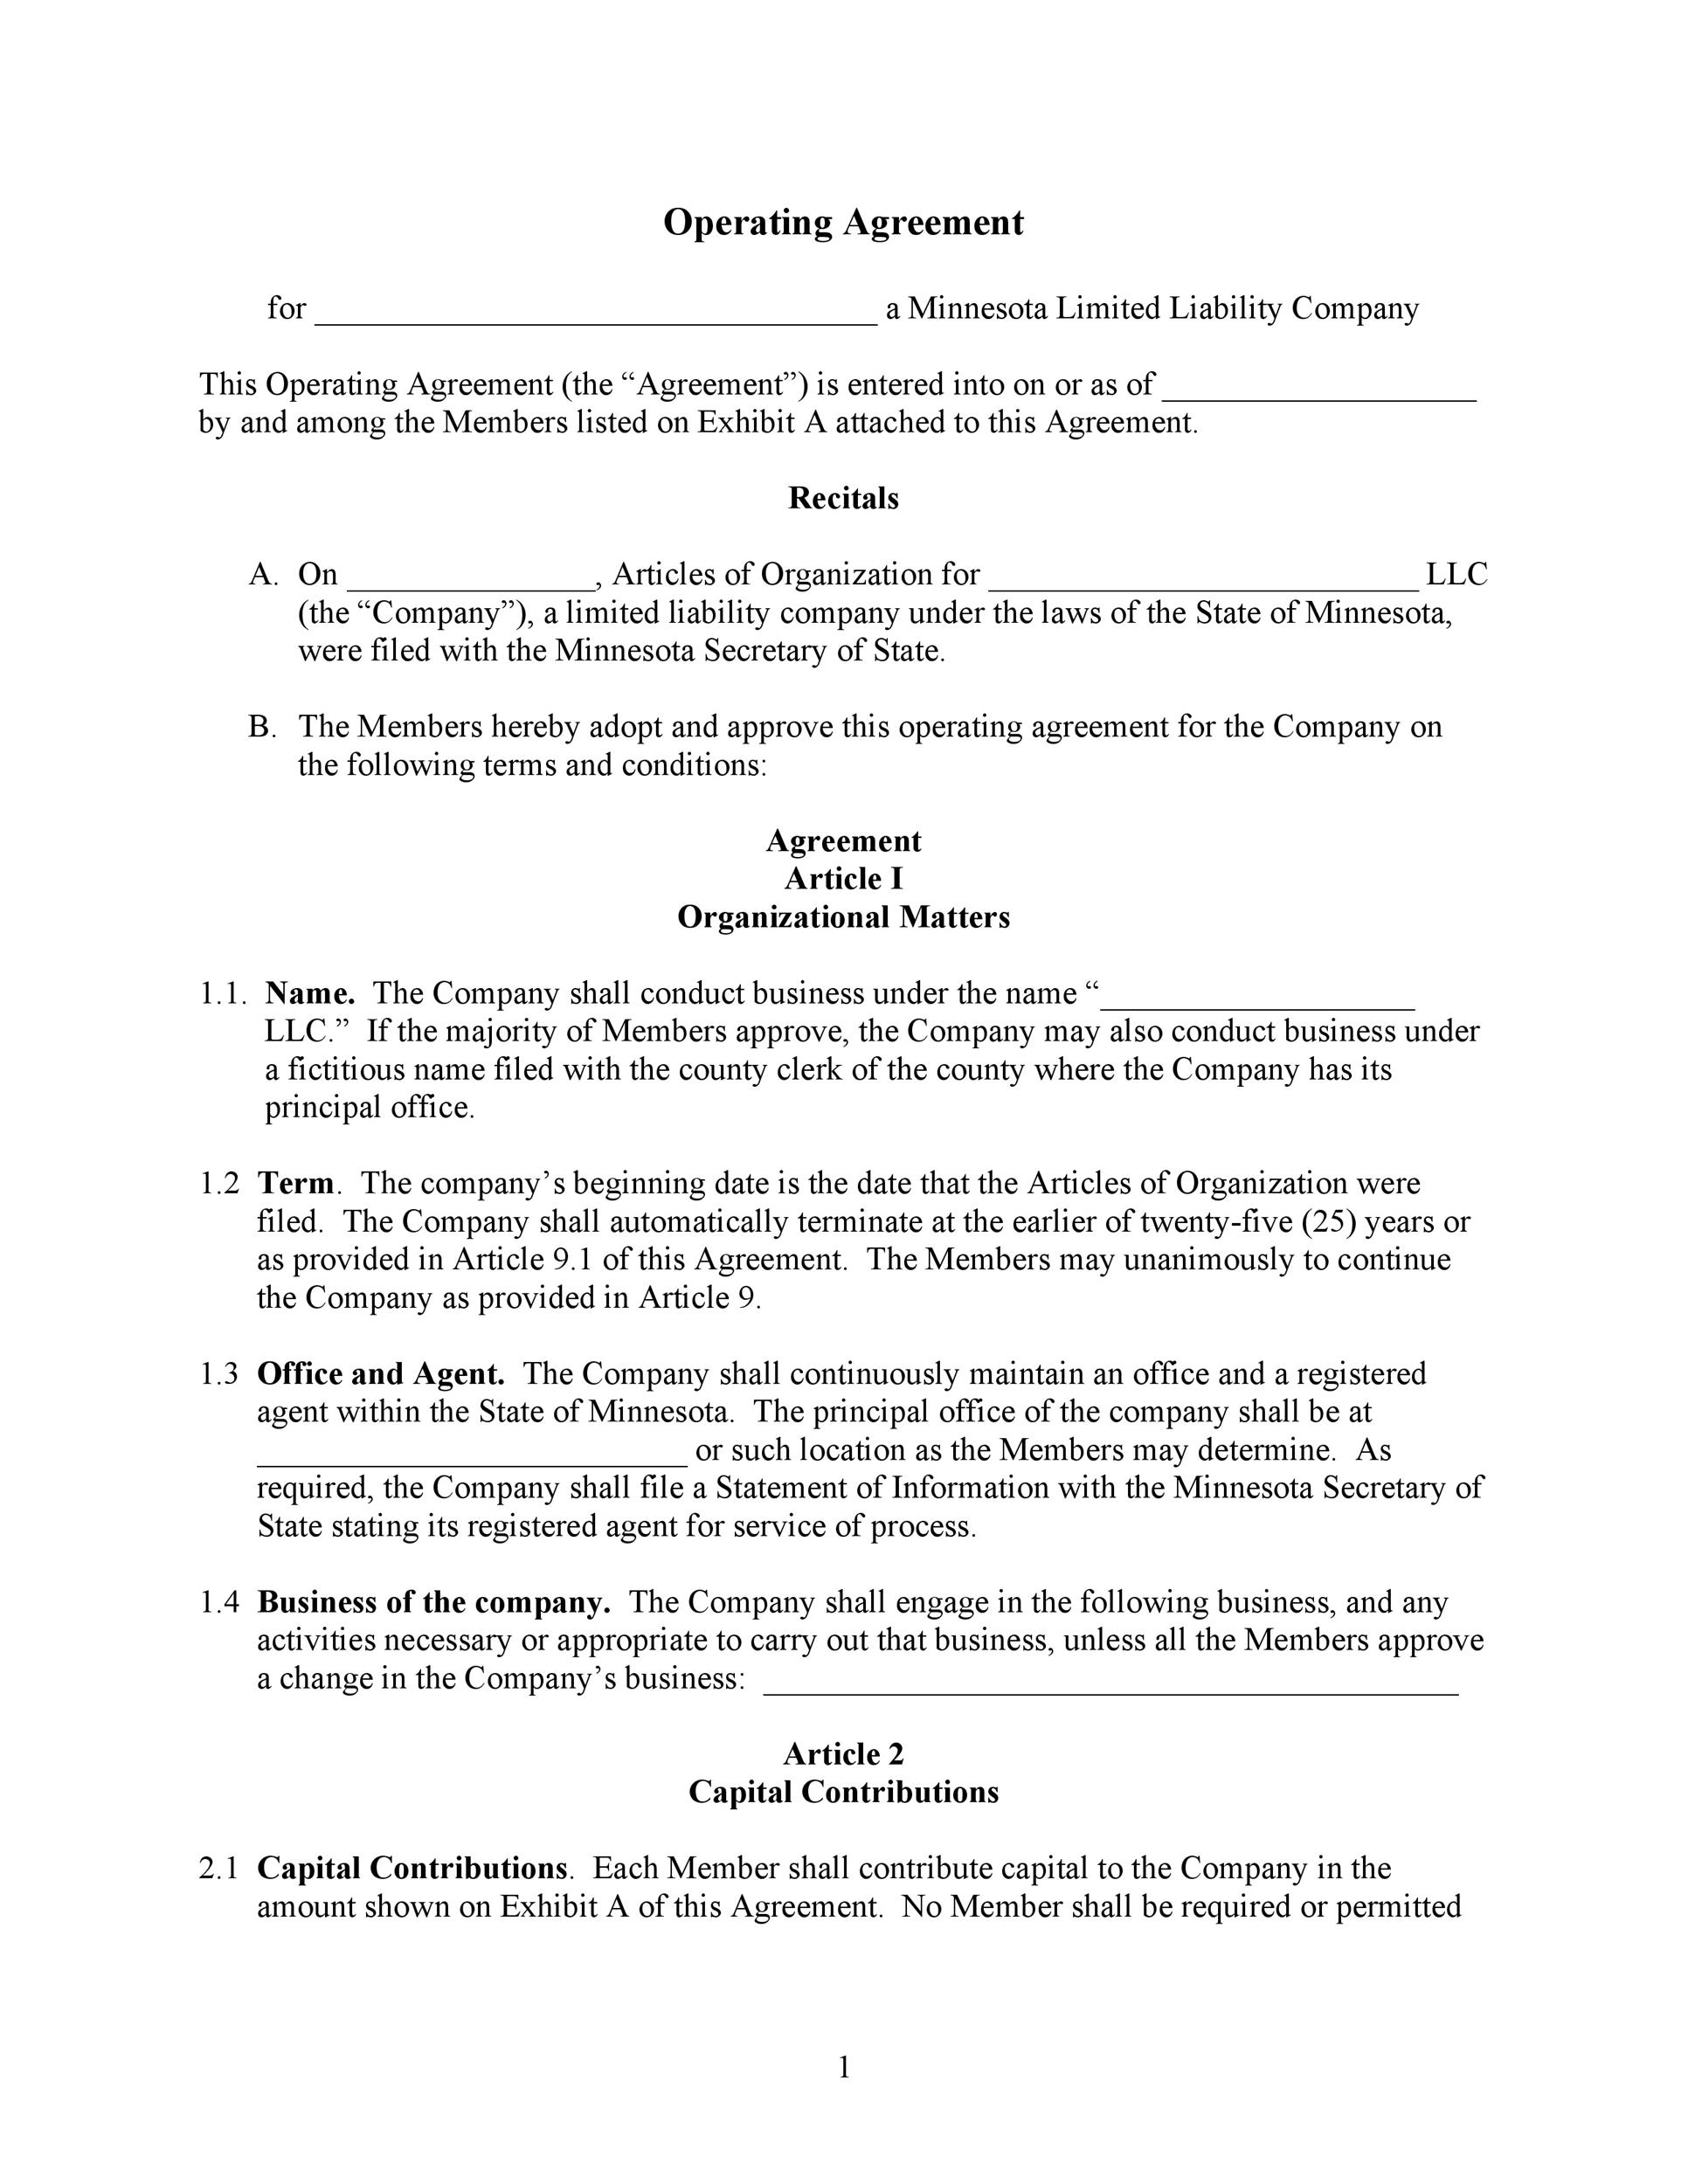 Professional LLC Operating Agreement Templates Template Lab - S corporation operating agreement template